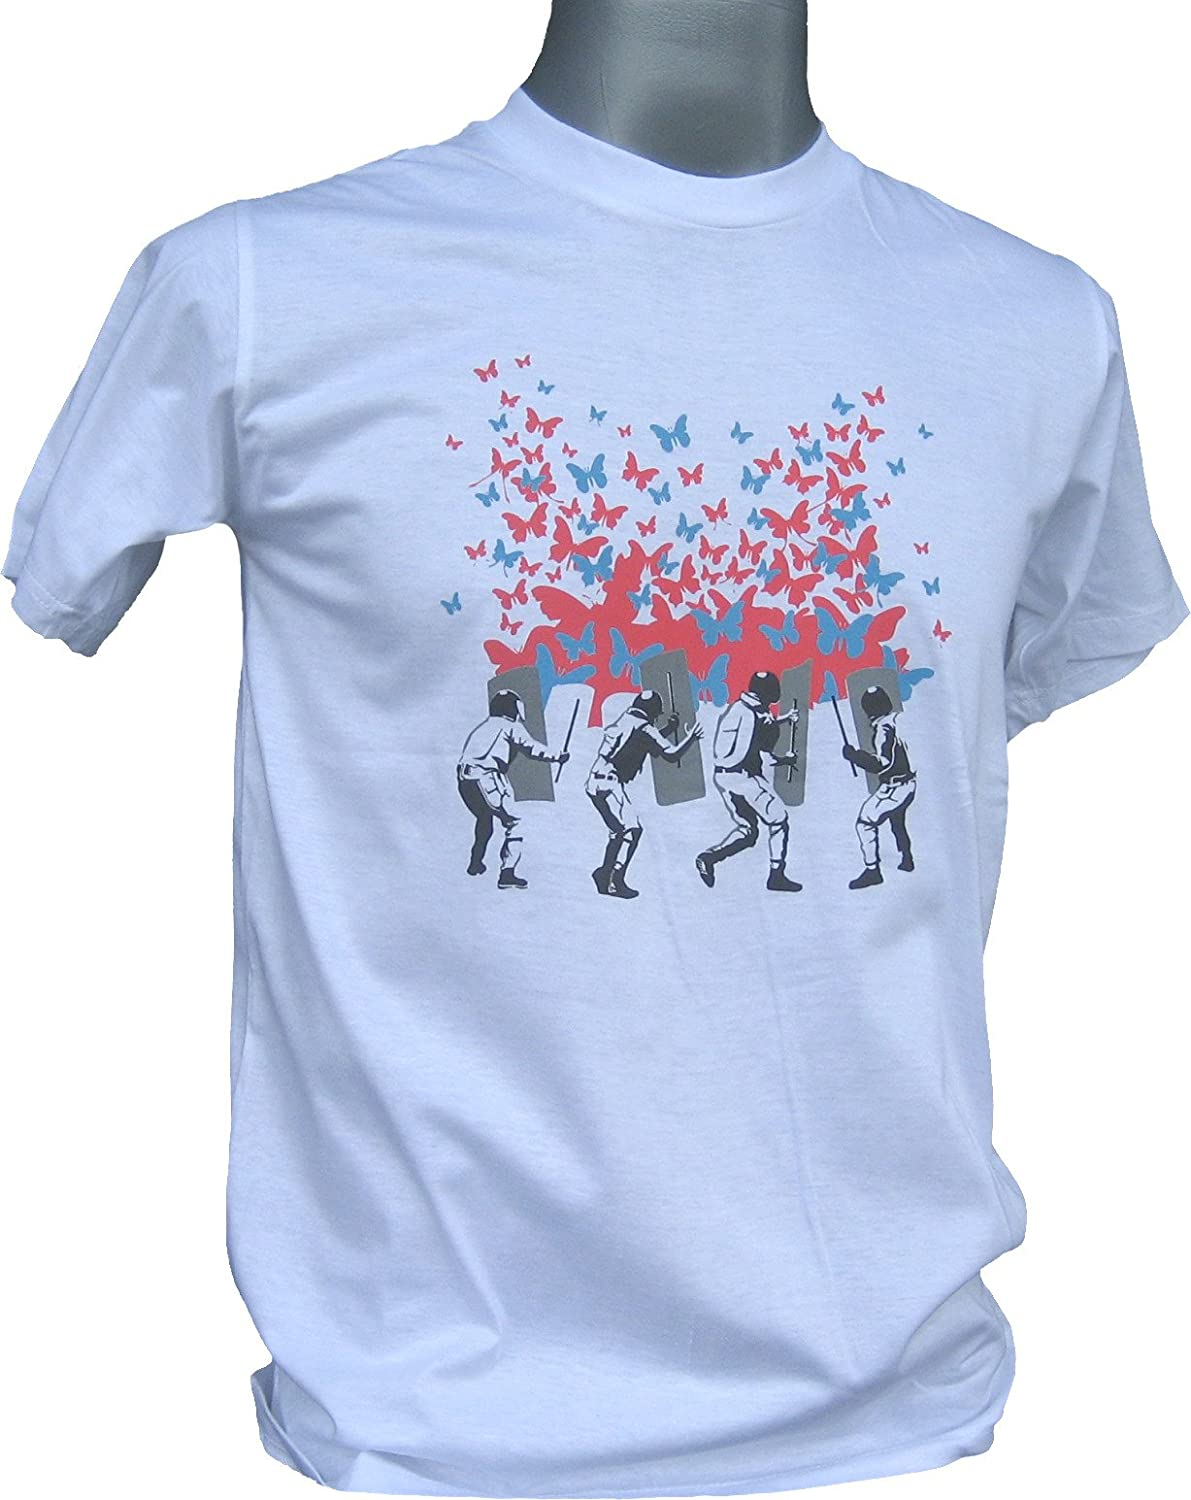 Full Funk Baton and Shields vs the Butterfly Masses of Love T-Shirt